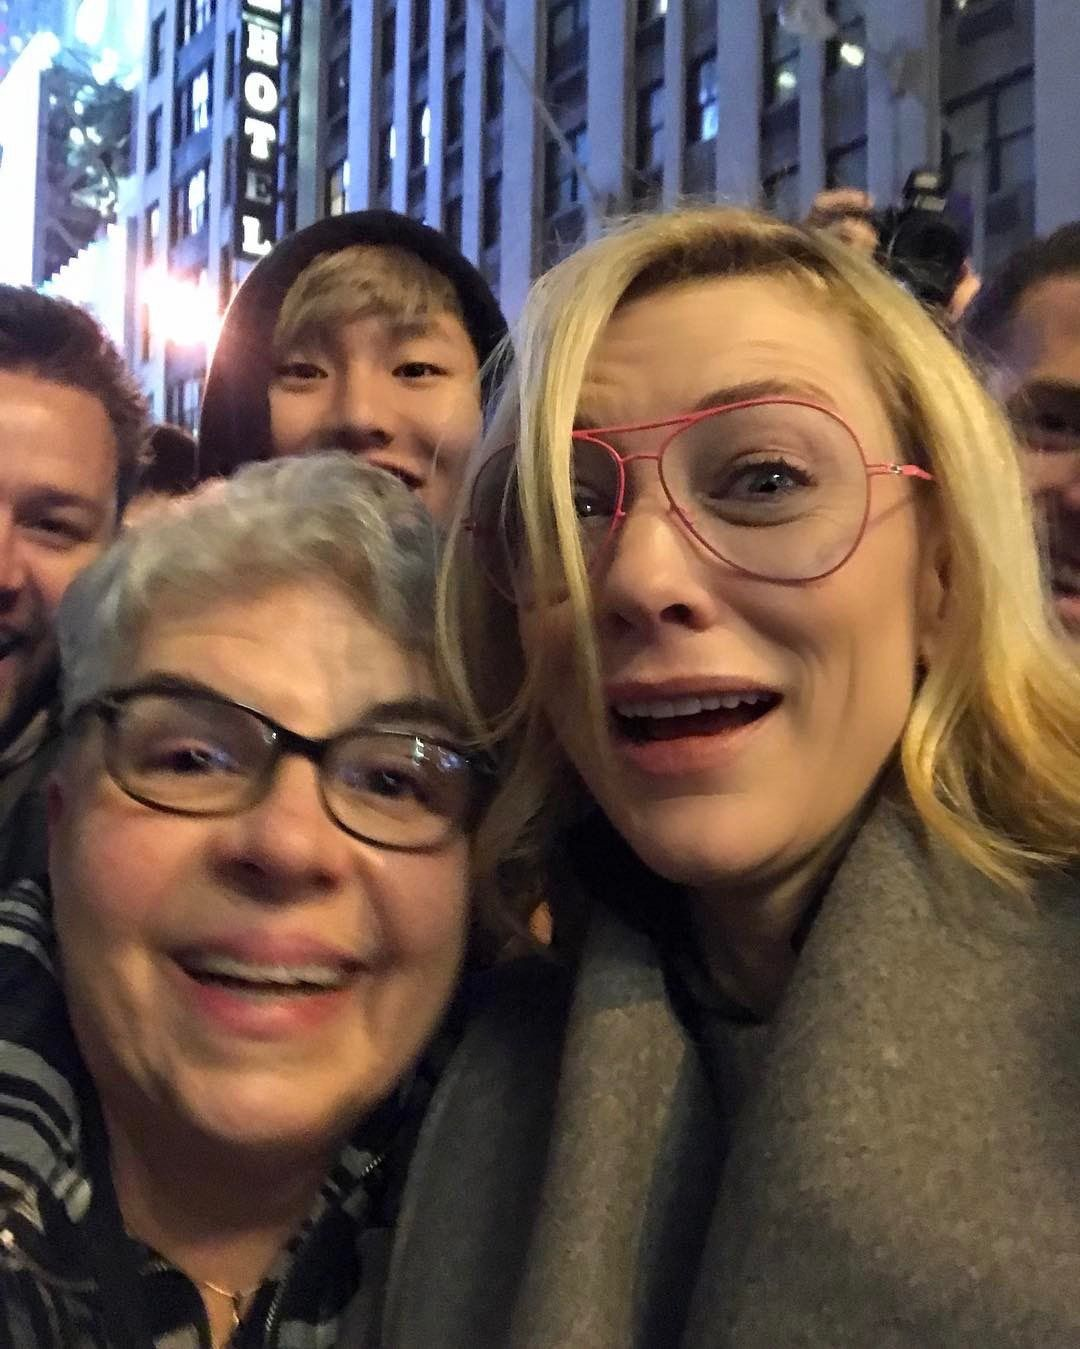 Selfie Cate Blanchett nudes (42 photos), Topless, Hot, Feet, see through 2015